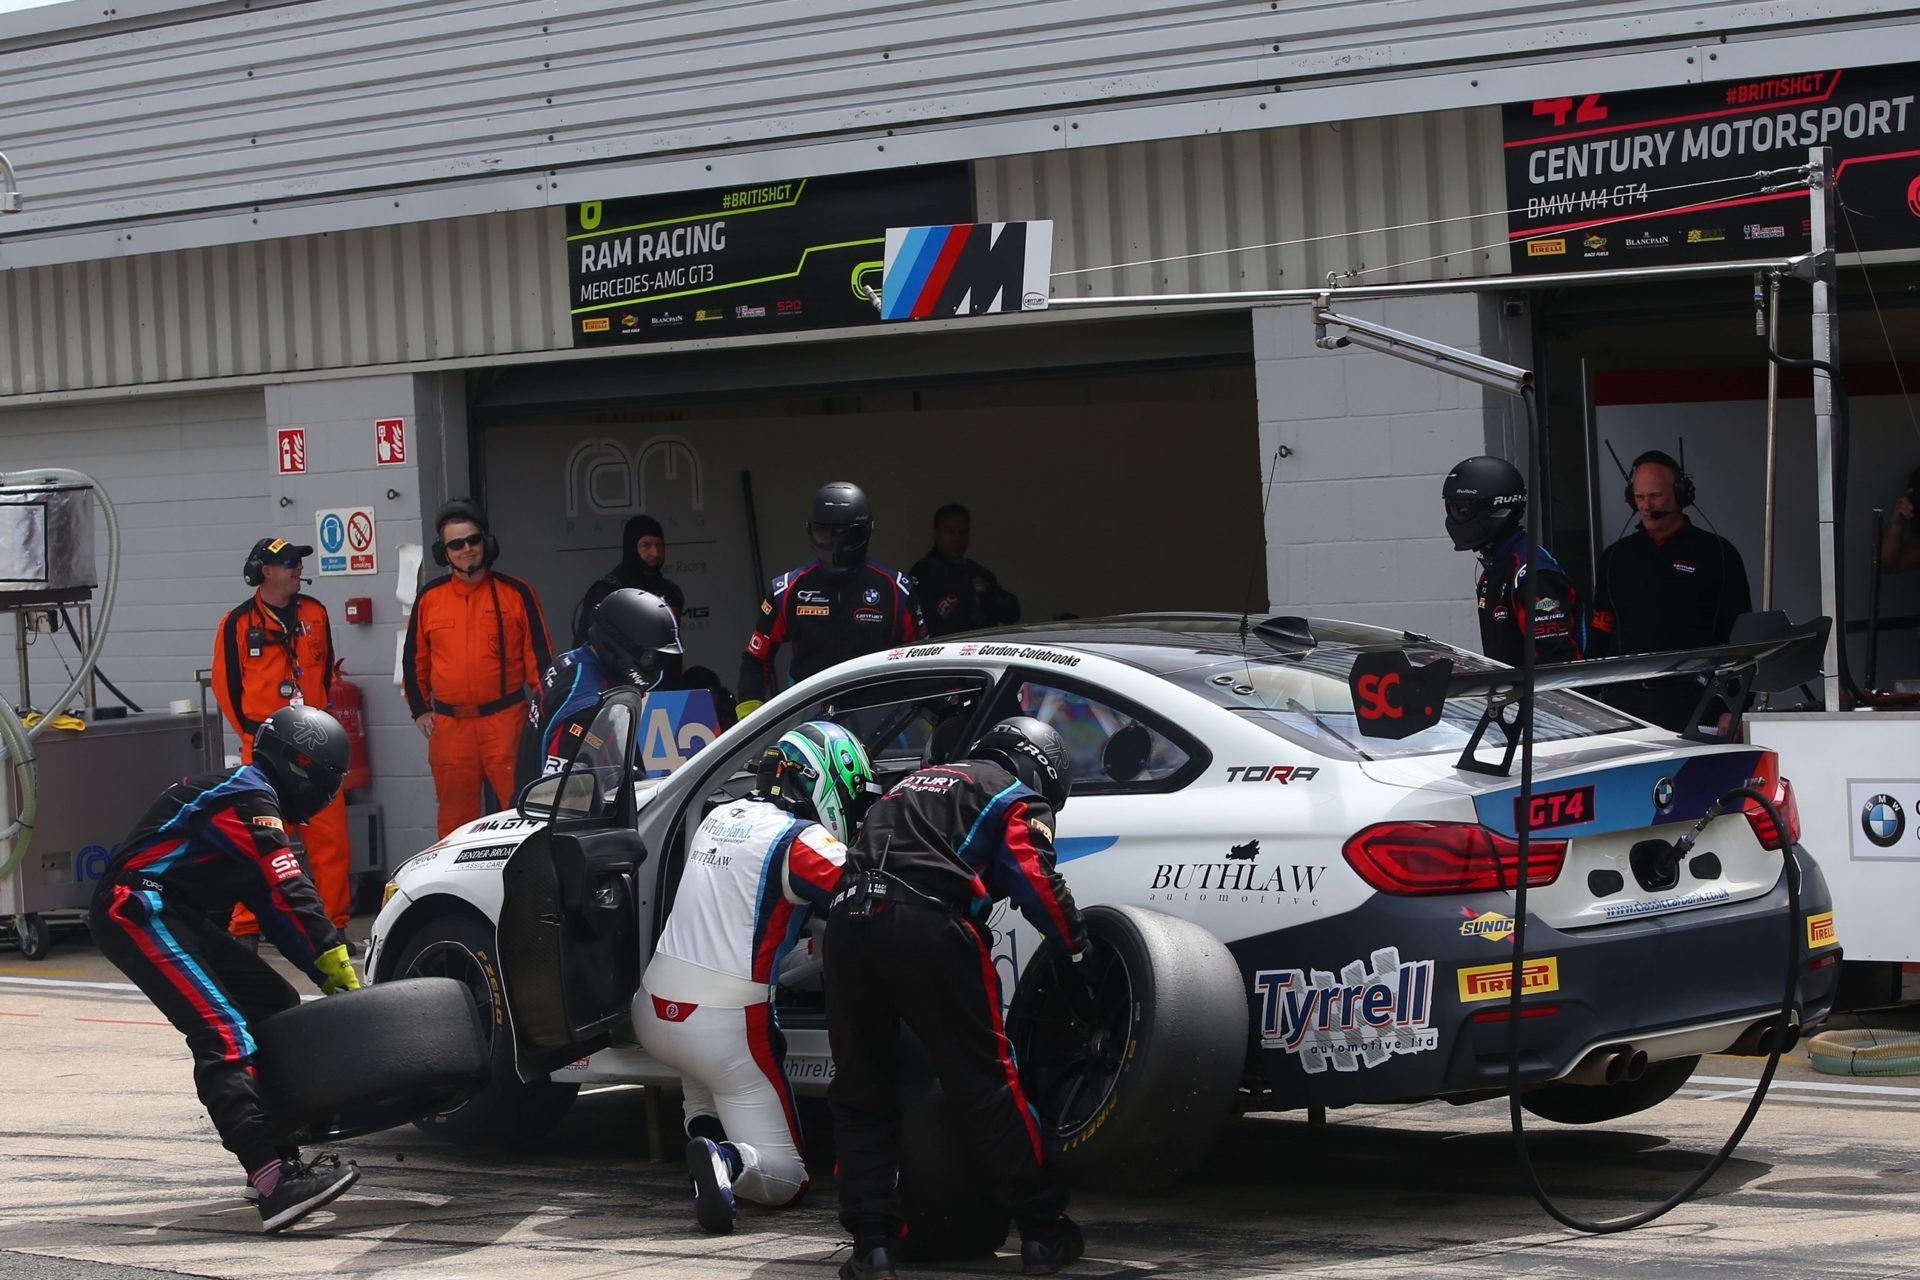 BMW 3 Series In The Pits